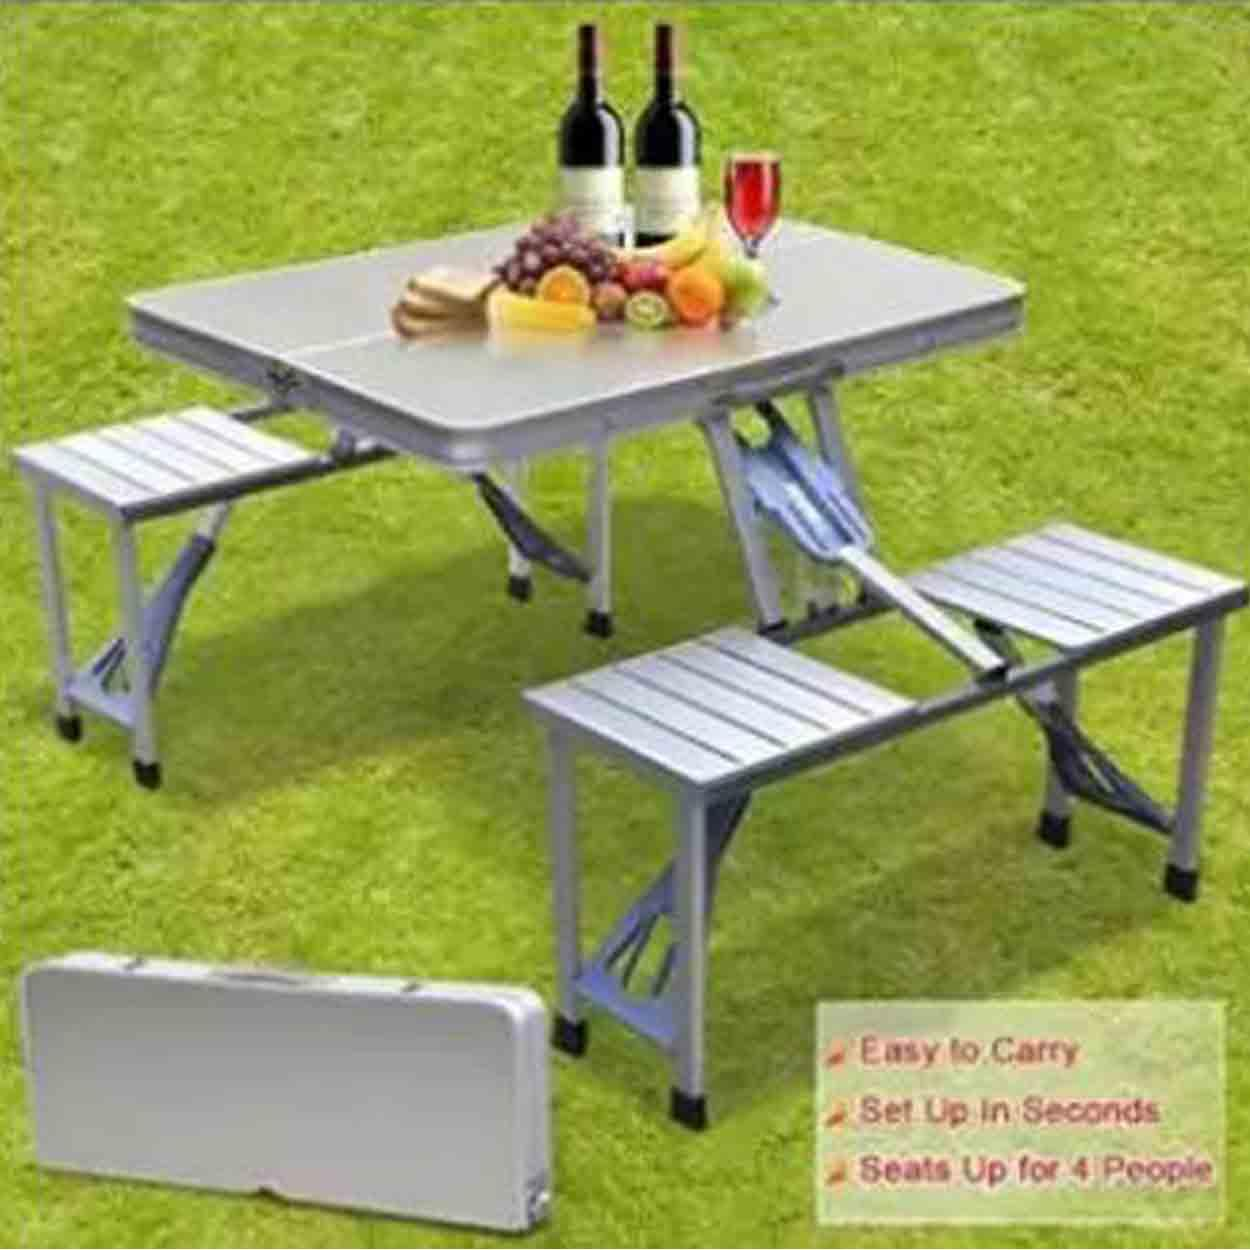 Fine Outdoor Aluminum Portable Folding Camp Suitcase Picnic Table With 4 Seats Silver Download Free Architecture Designs Scobabritishbridgeorg